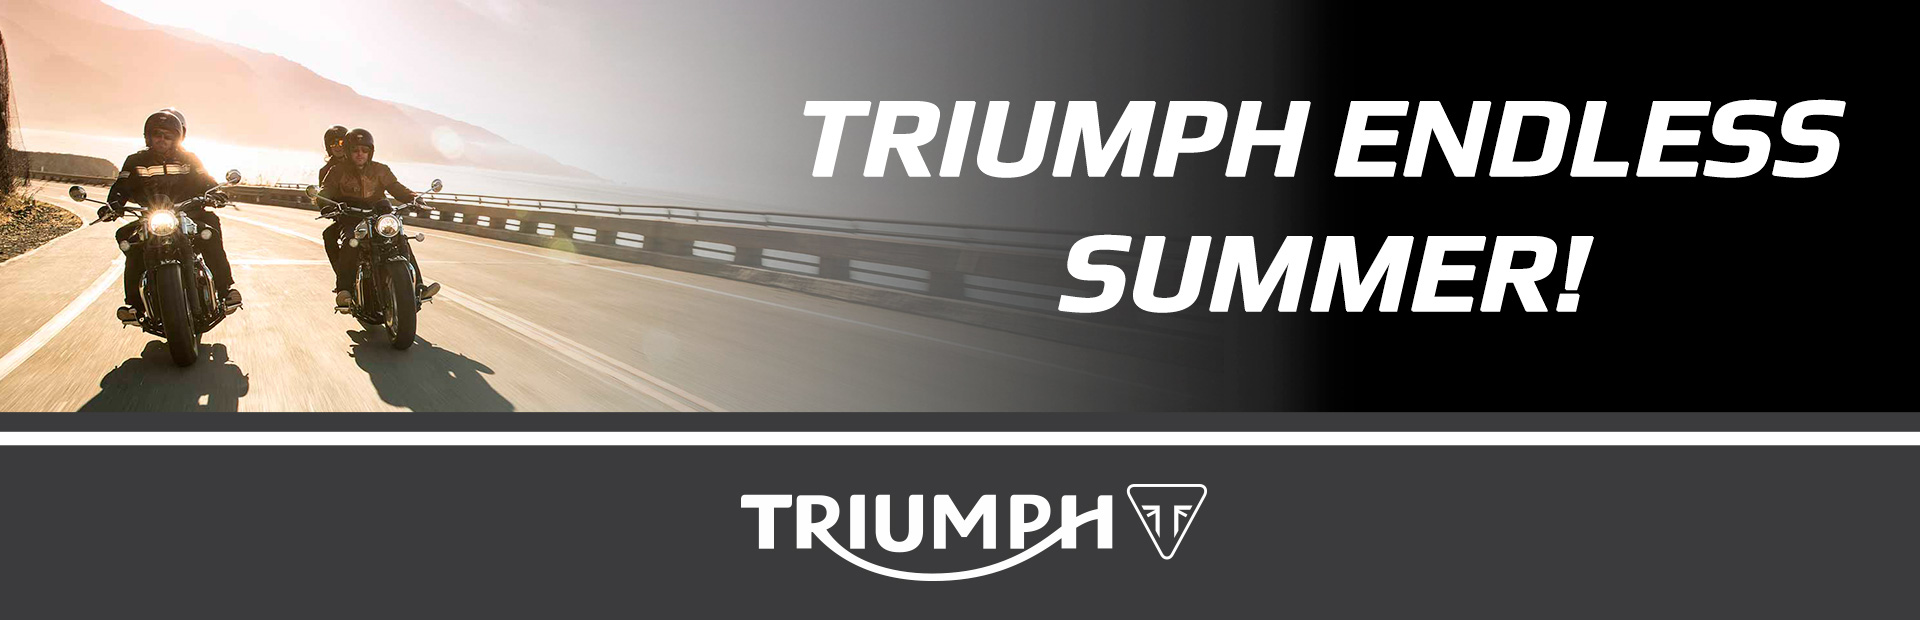 Triumph: TRIUMPH ENDLESS SUMMER!